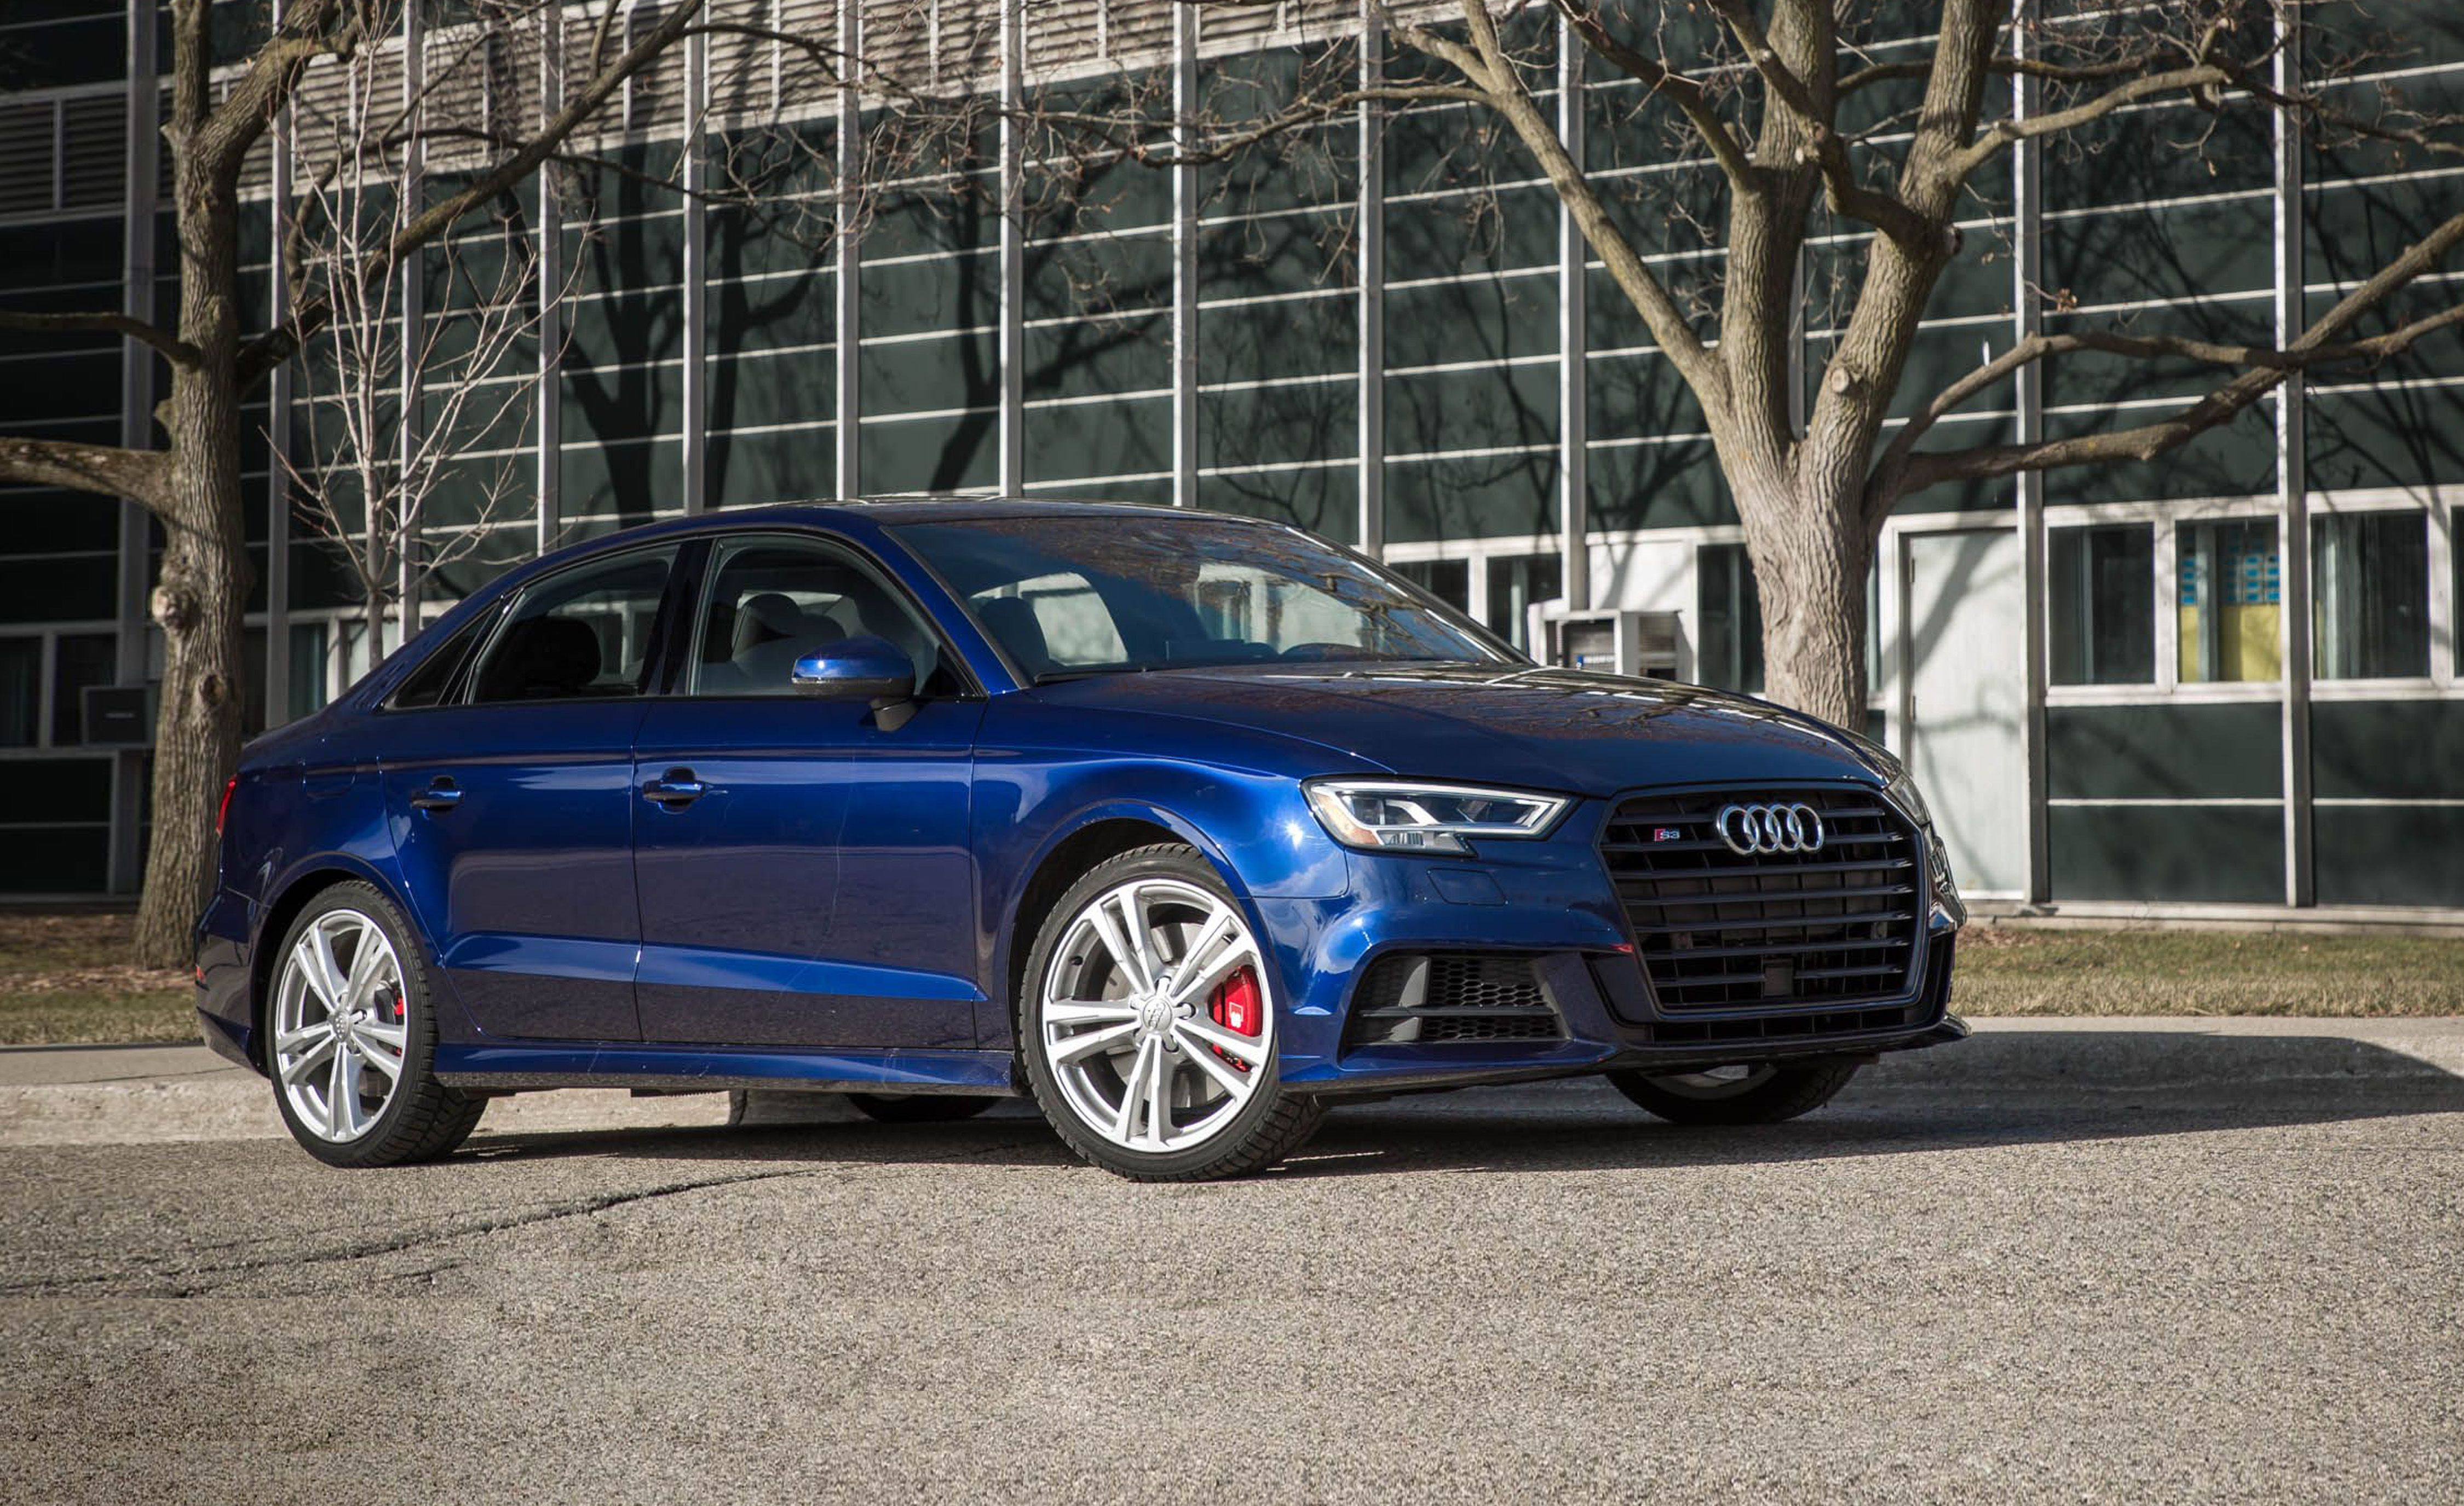 2019 Audi S3 Reviews Audi S3 Price Photos And Specs Car And Driver